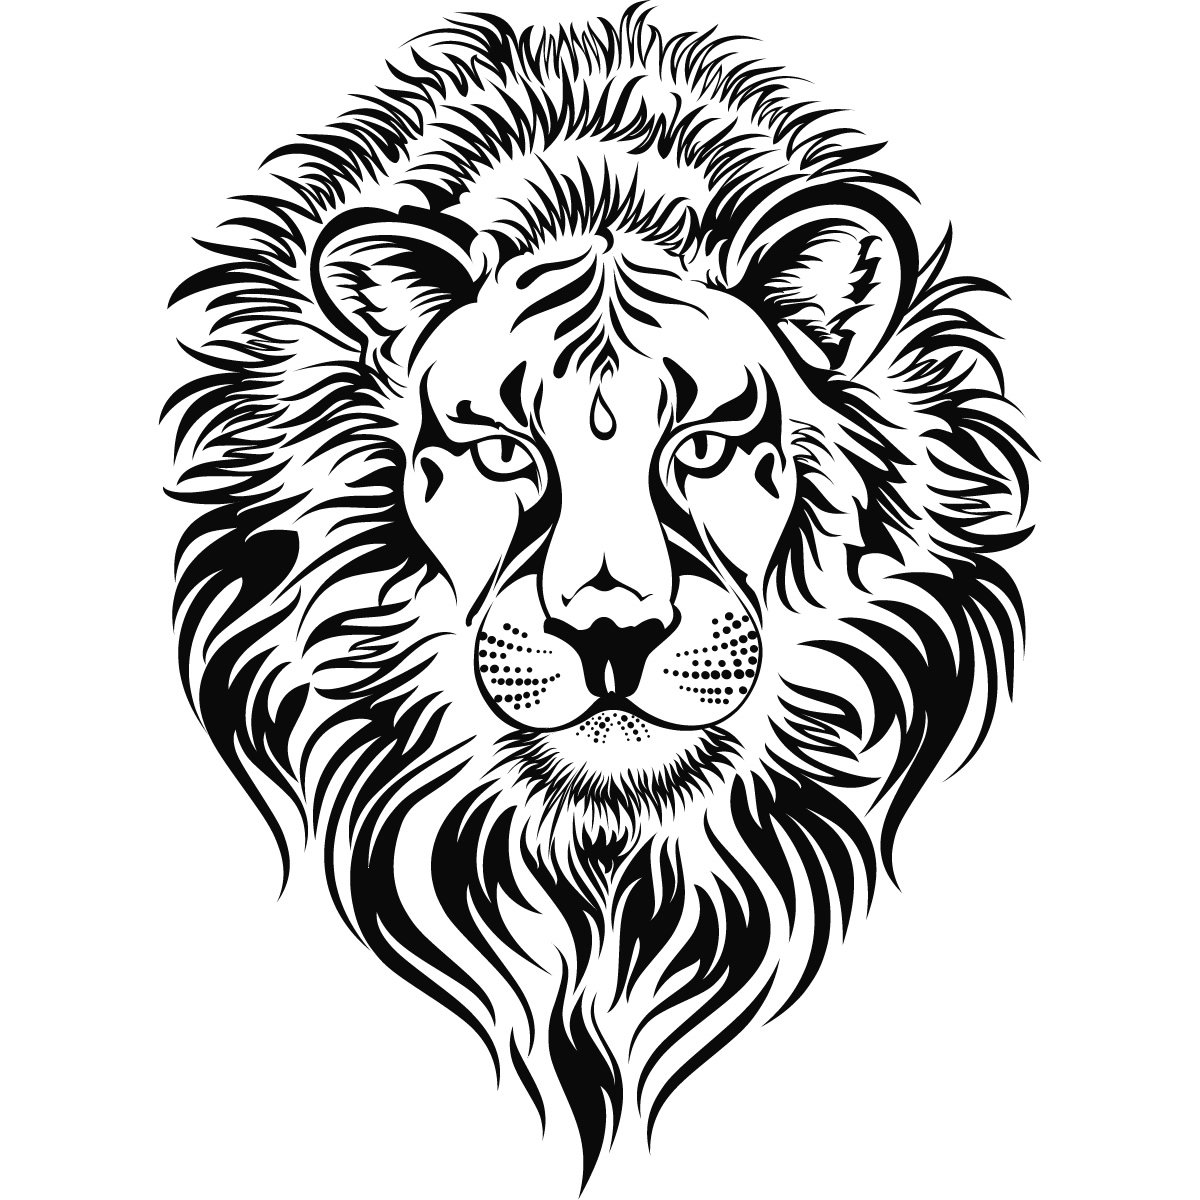 Details about Lions Head Animal Big Cats Wall Art Sticker Wall.